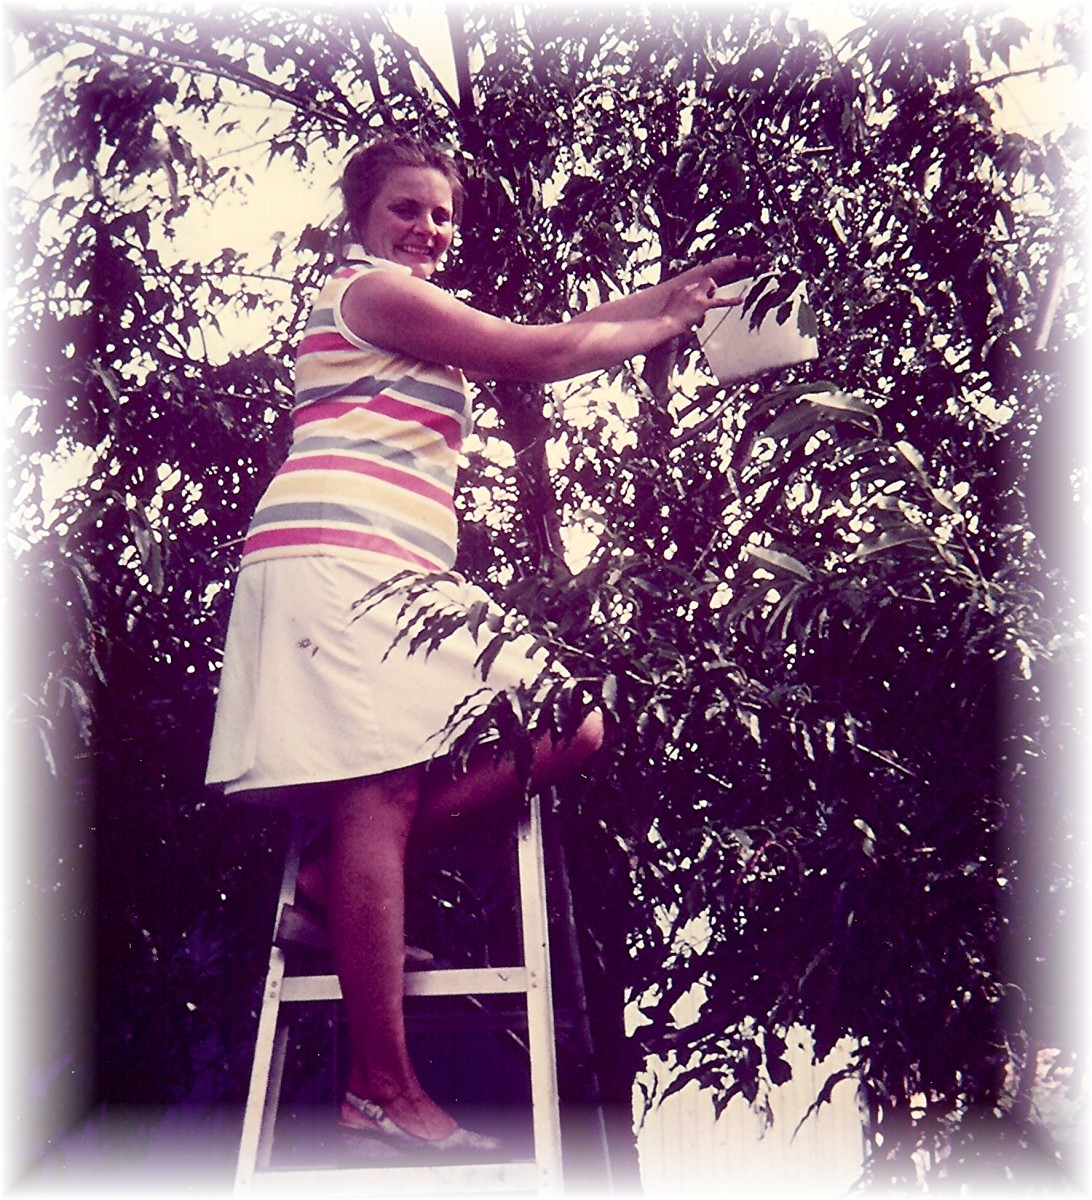 There I am picking chokecherries from our tree in the front yard.